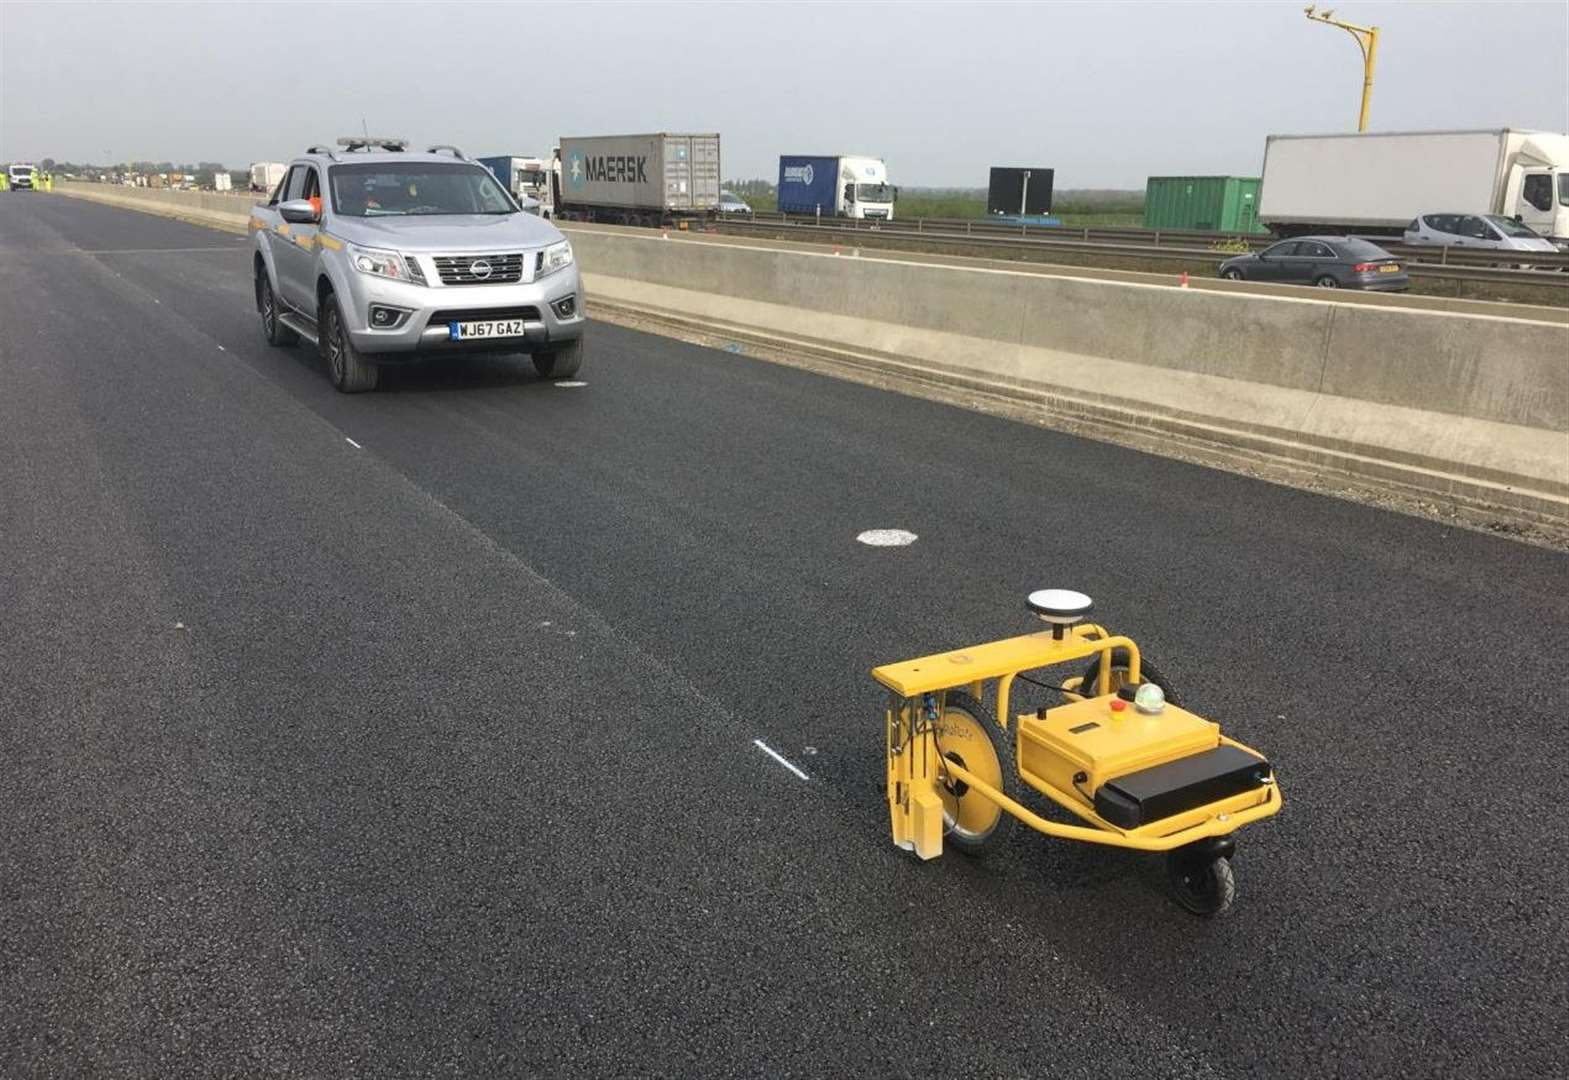 Road-marking robot adds hard drive to new A14